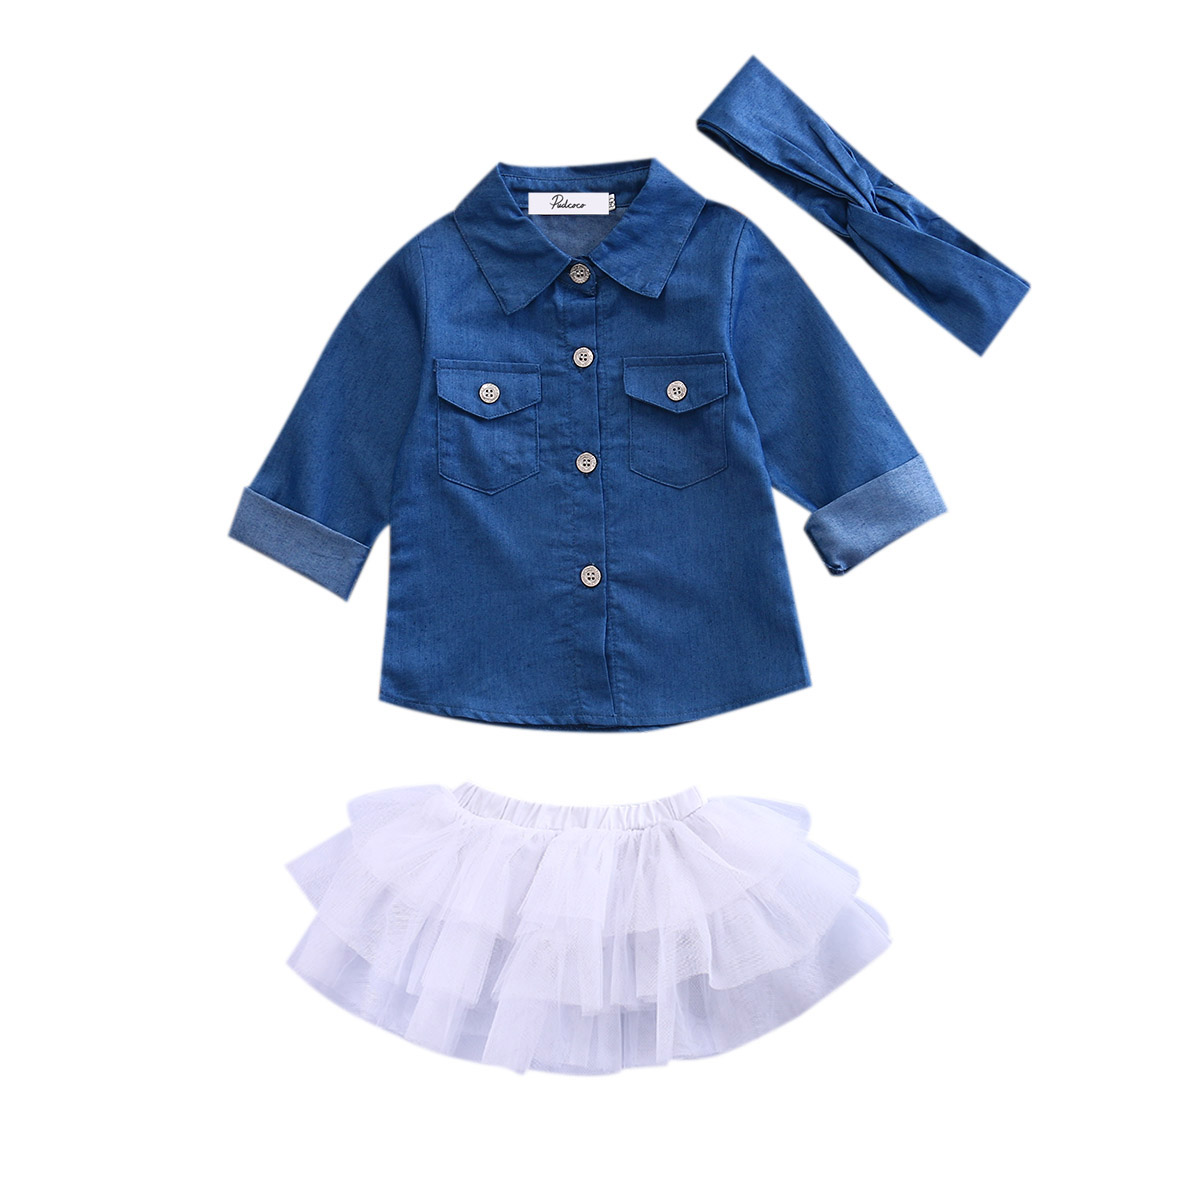 Toddler Kids Baby Girl Clothes Set Denim Tops Shirt Tutu Skirts Ruffles Cute Party 3pcs Outfits Clothing Set Girls princess toddler kids baby girl clothes sets sequins tops vest tutu skirts cute ball headband 3pcs outfits set girls clothing